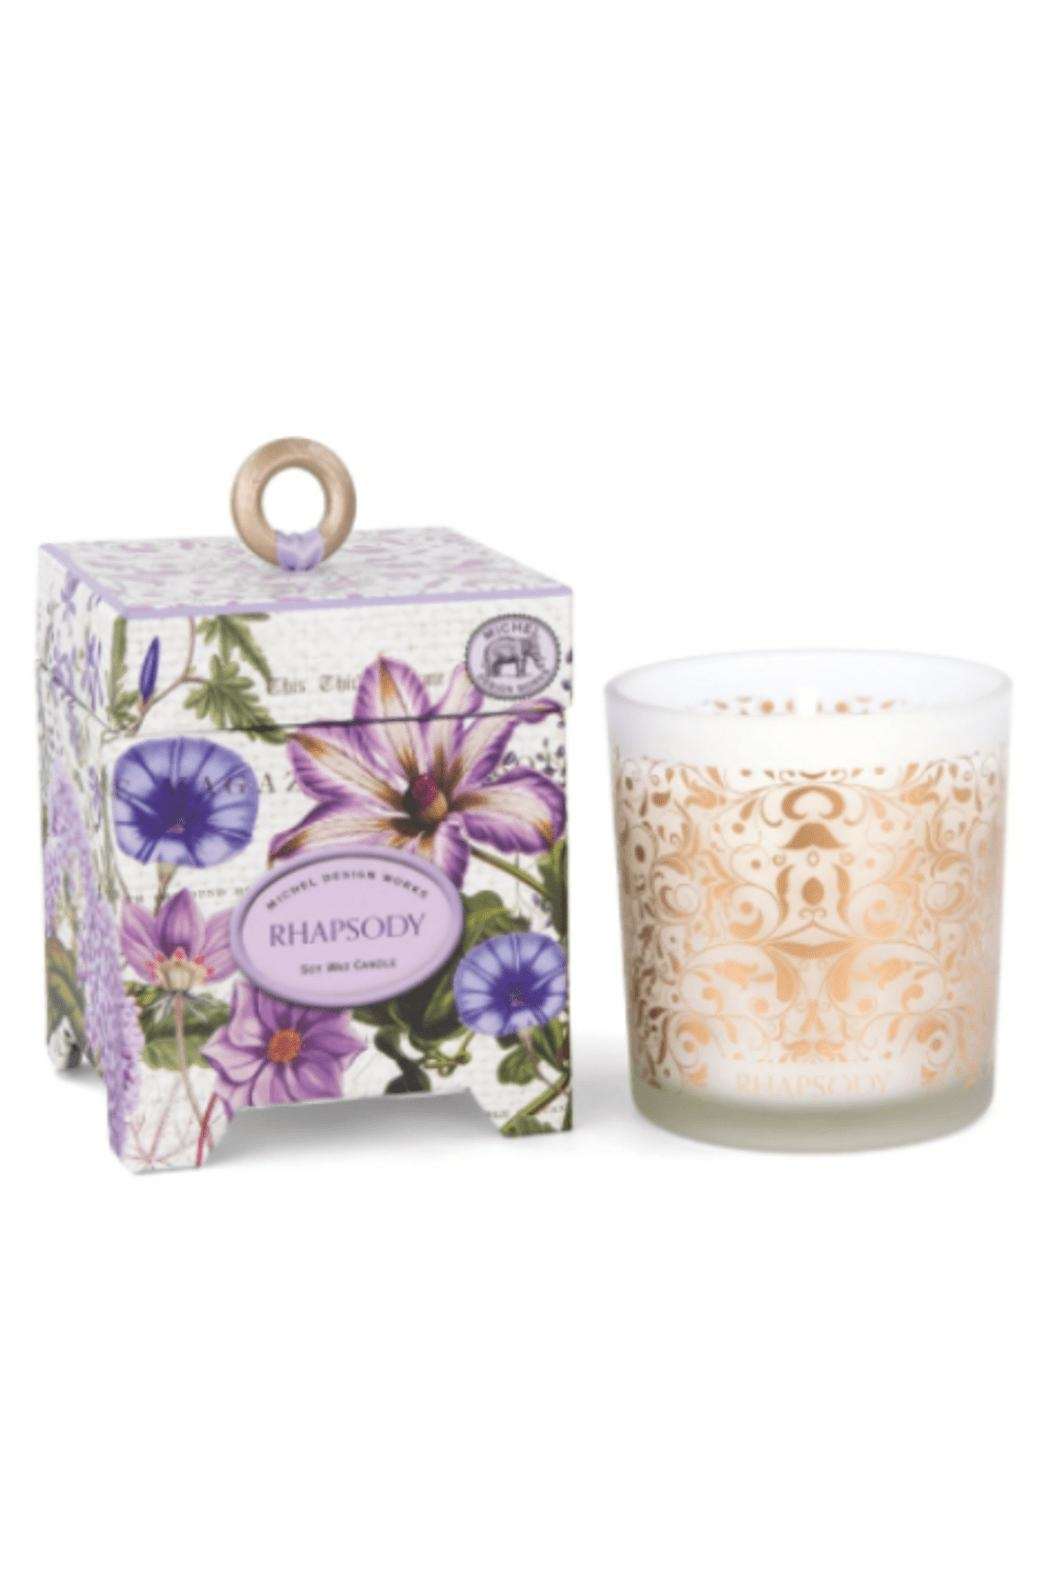 Michel Design Works Rhapsody Soy Wax Candle - Main Image